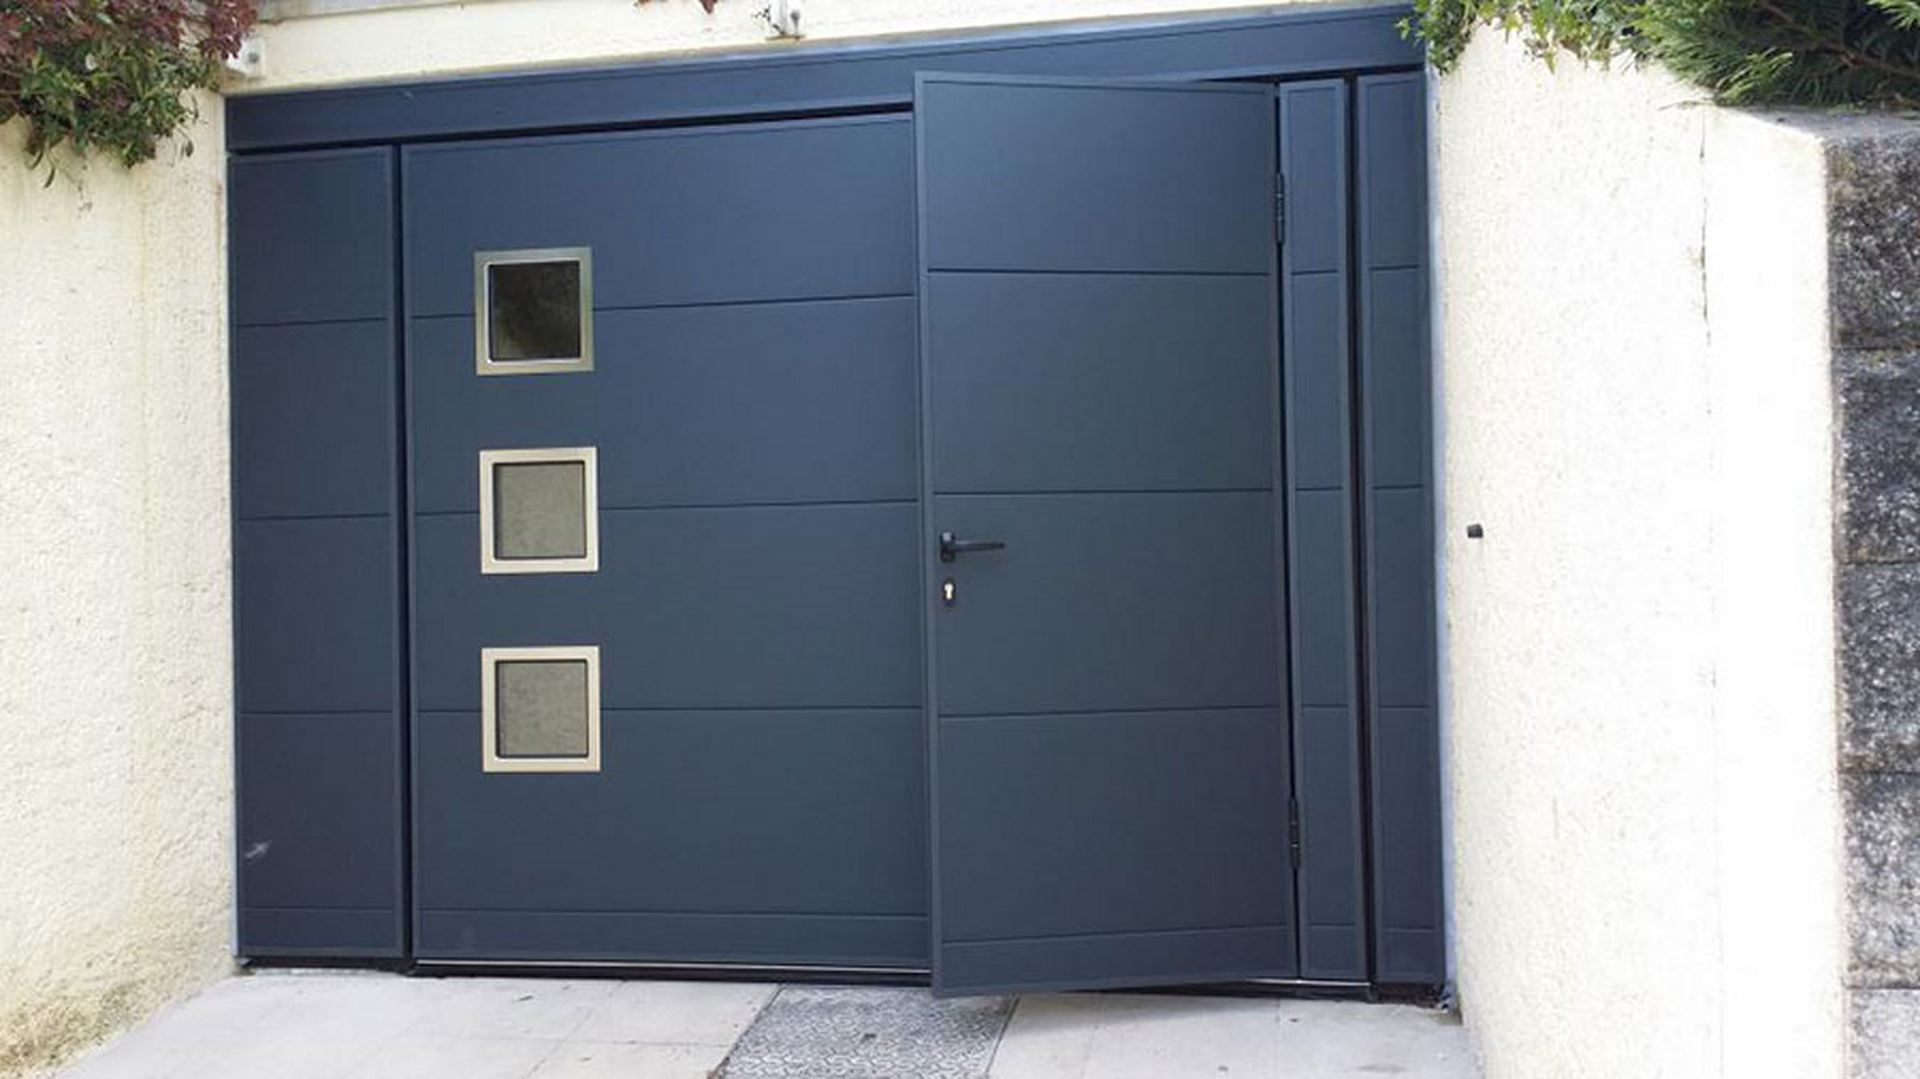 Combien co te une installation de porte de garage abc - Guide installation porte de garage ...